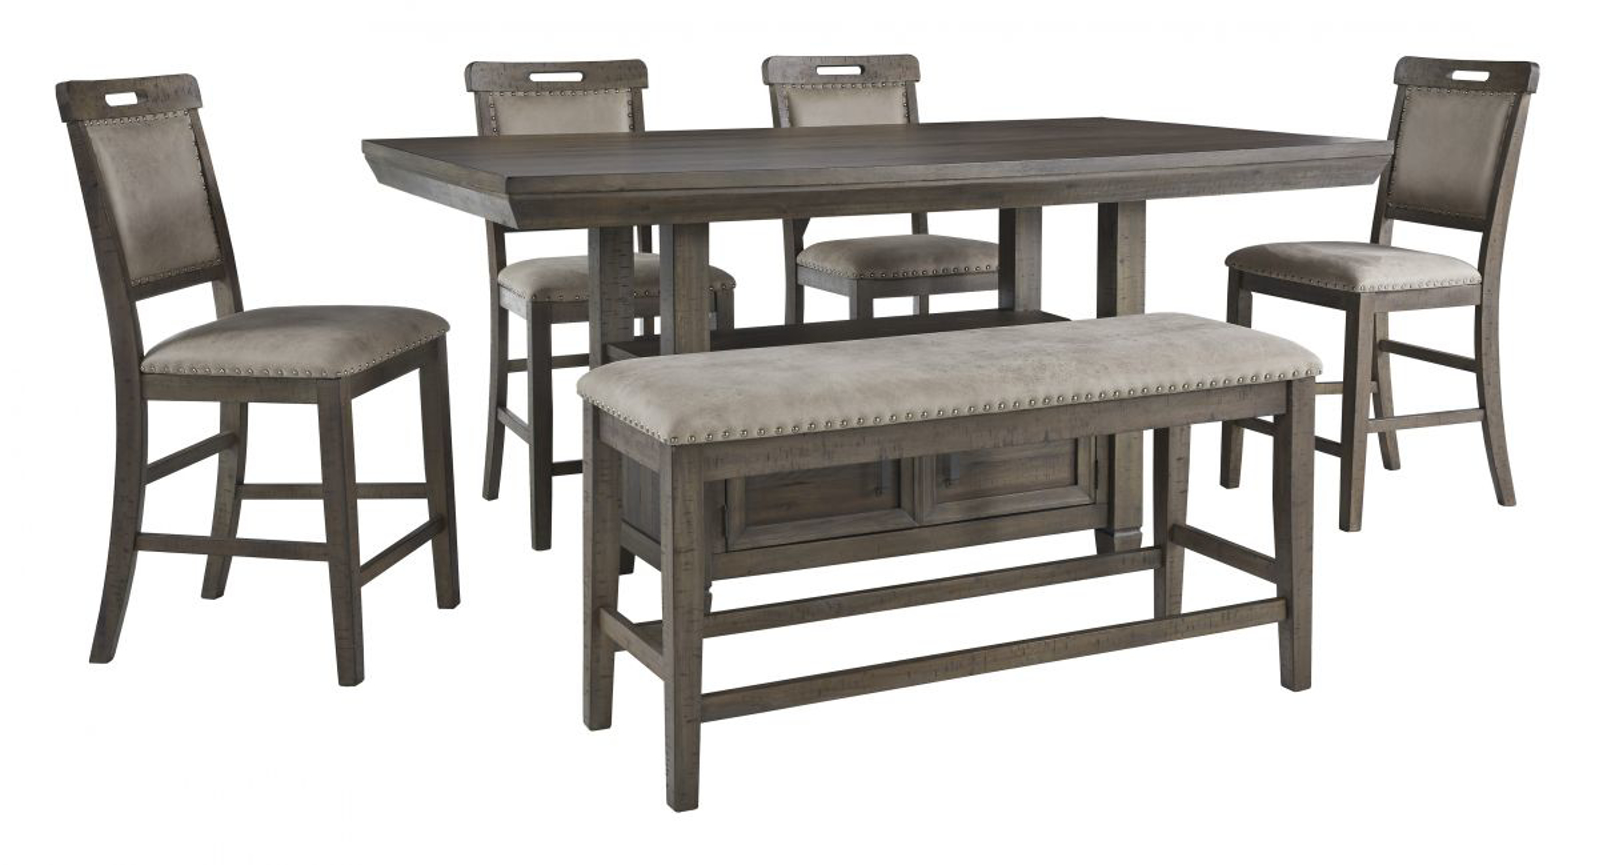 Picture of Johurst Pub Table, 4 Stools & Bench